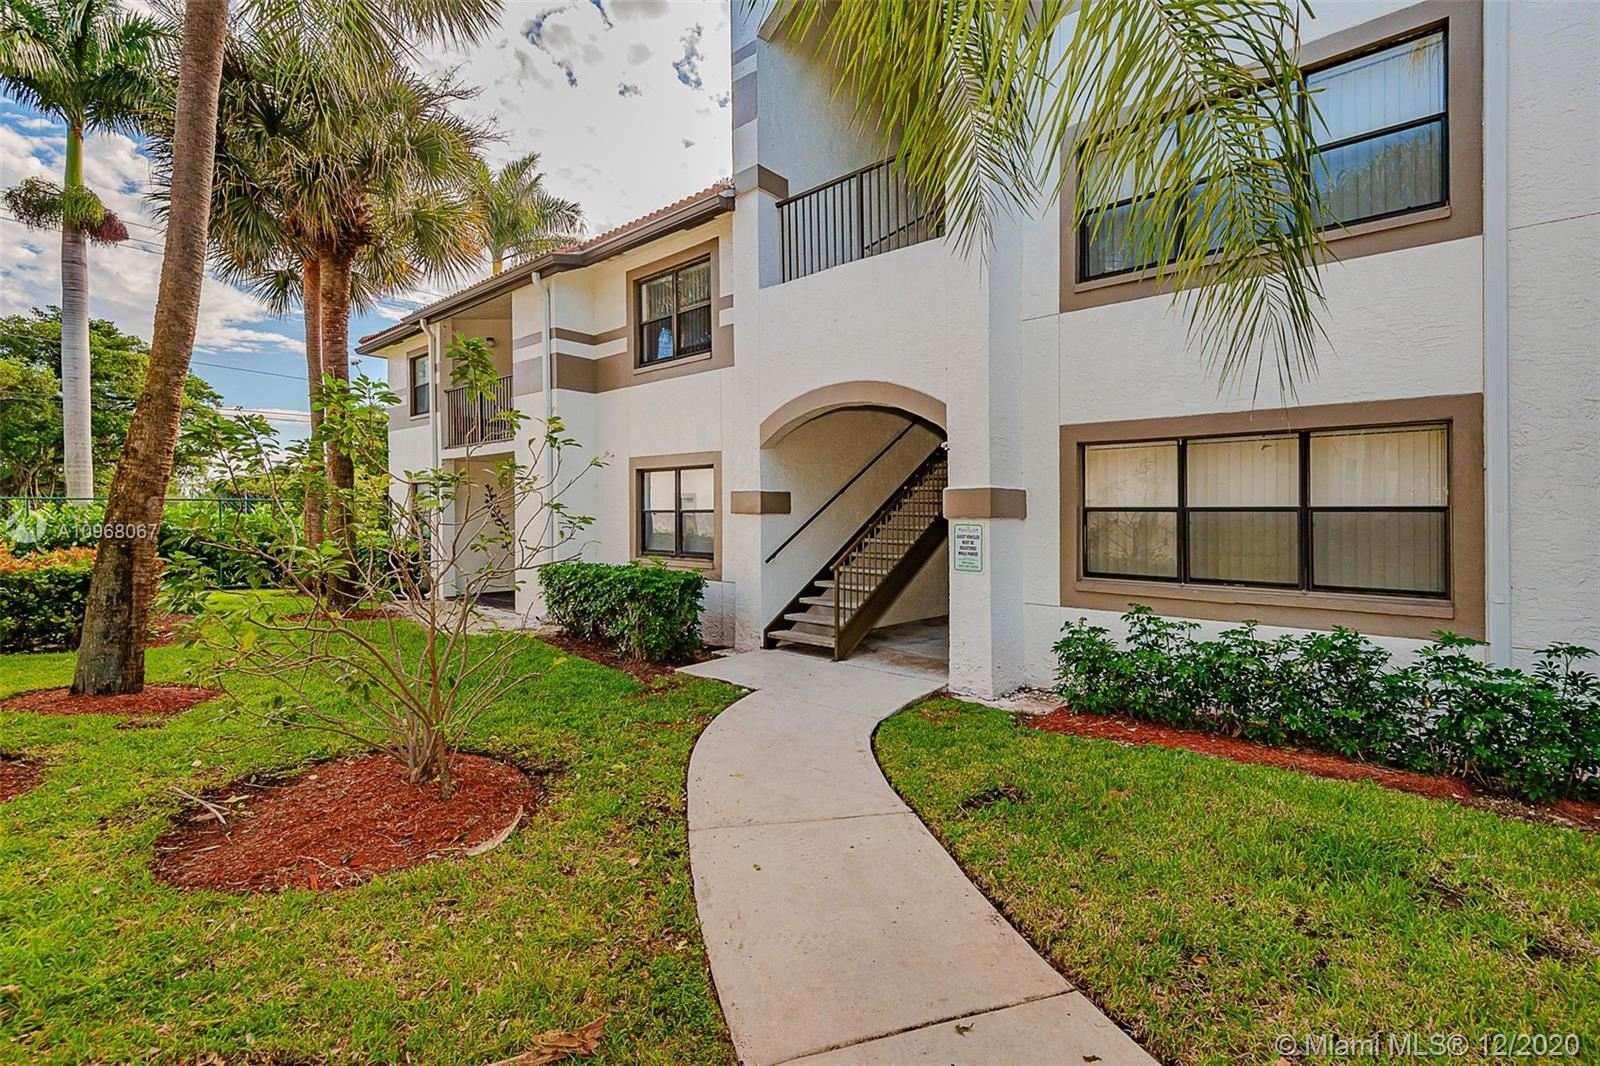 520 S Park Rd #11-12, Hollywood, FL 33021 - #: A10968067